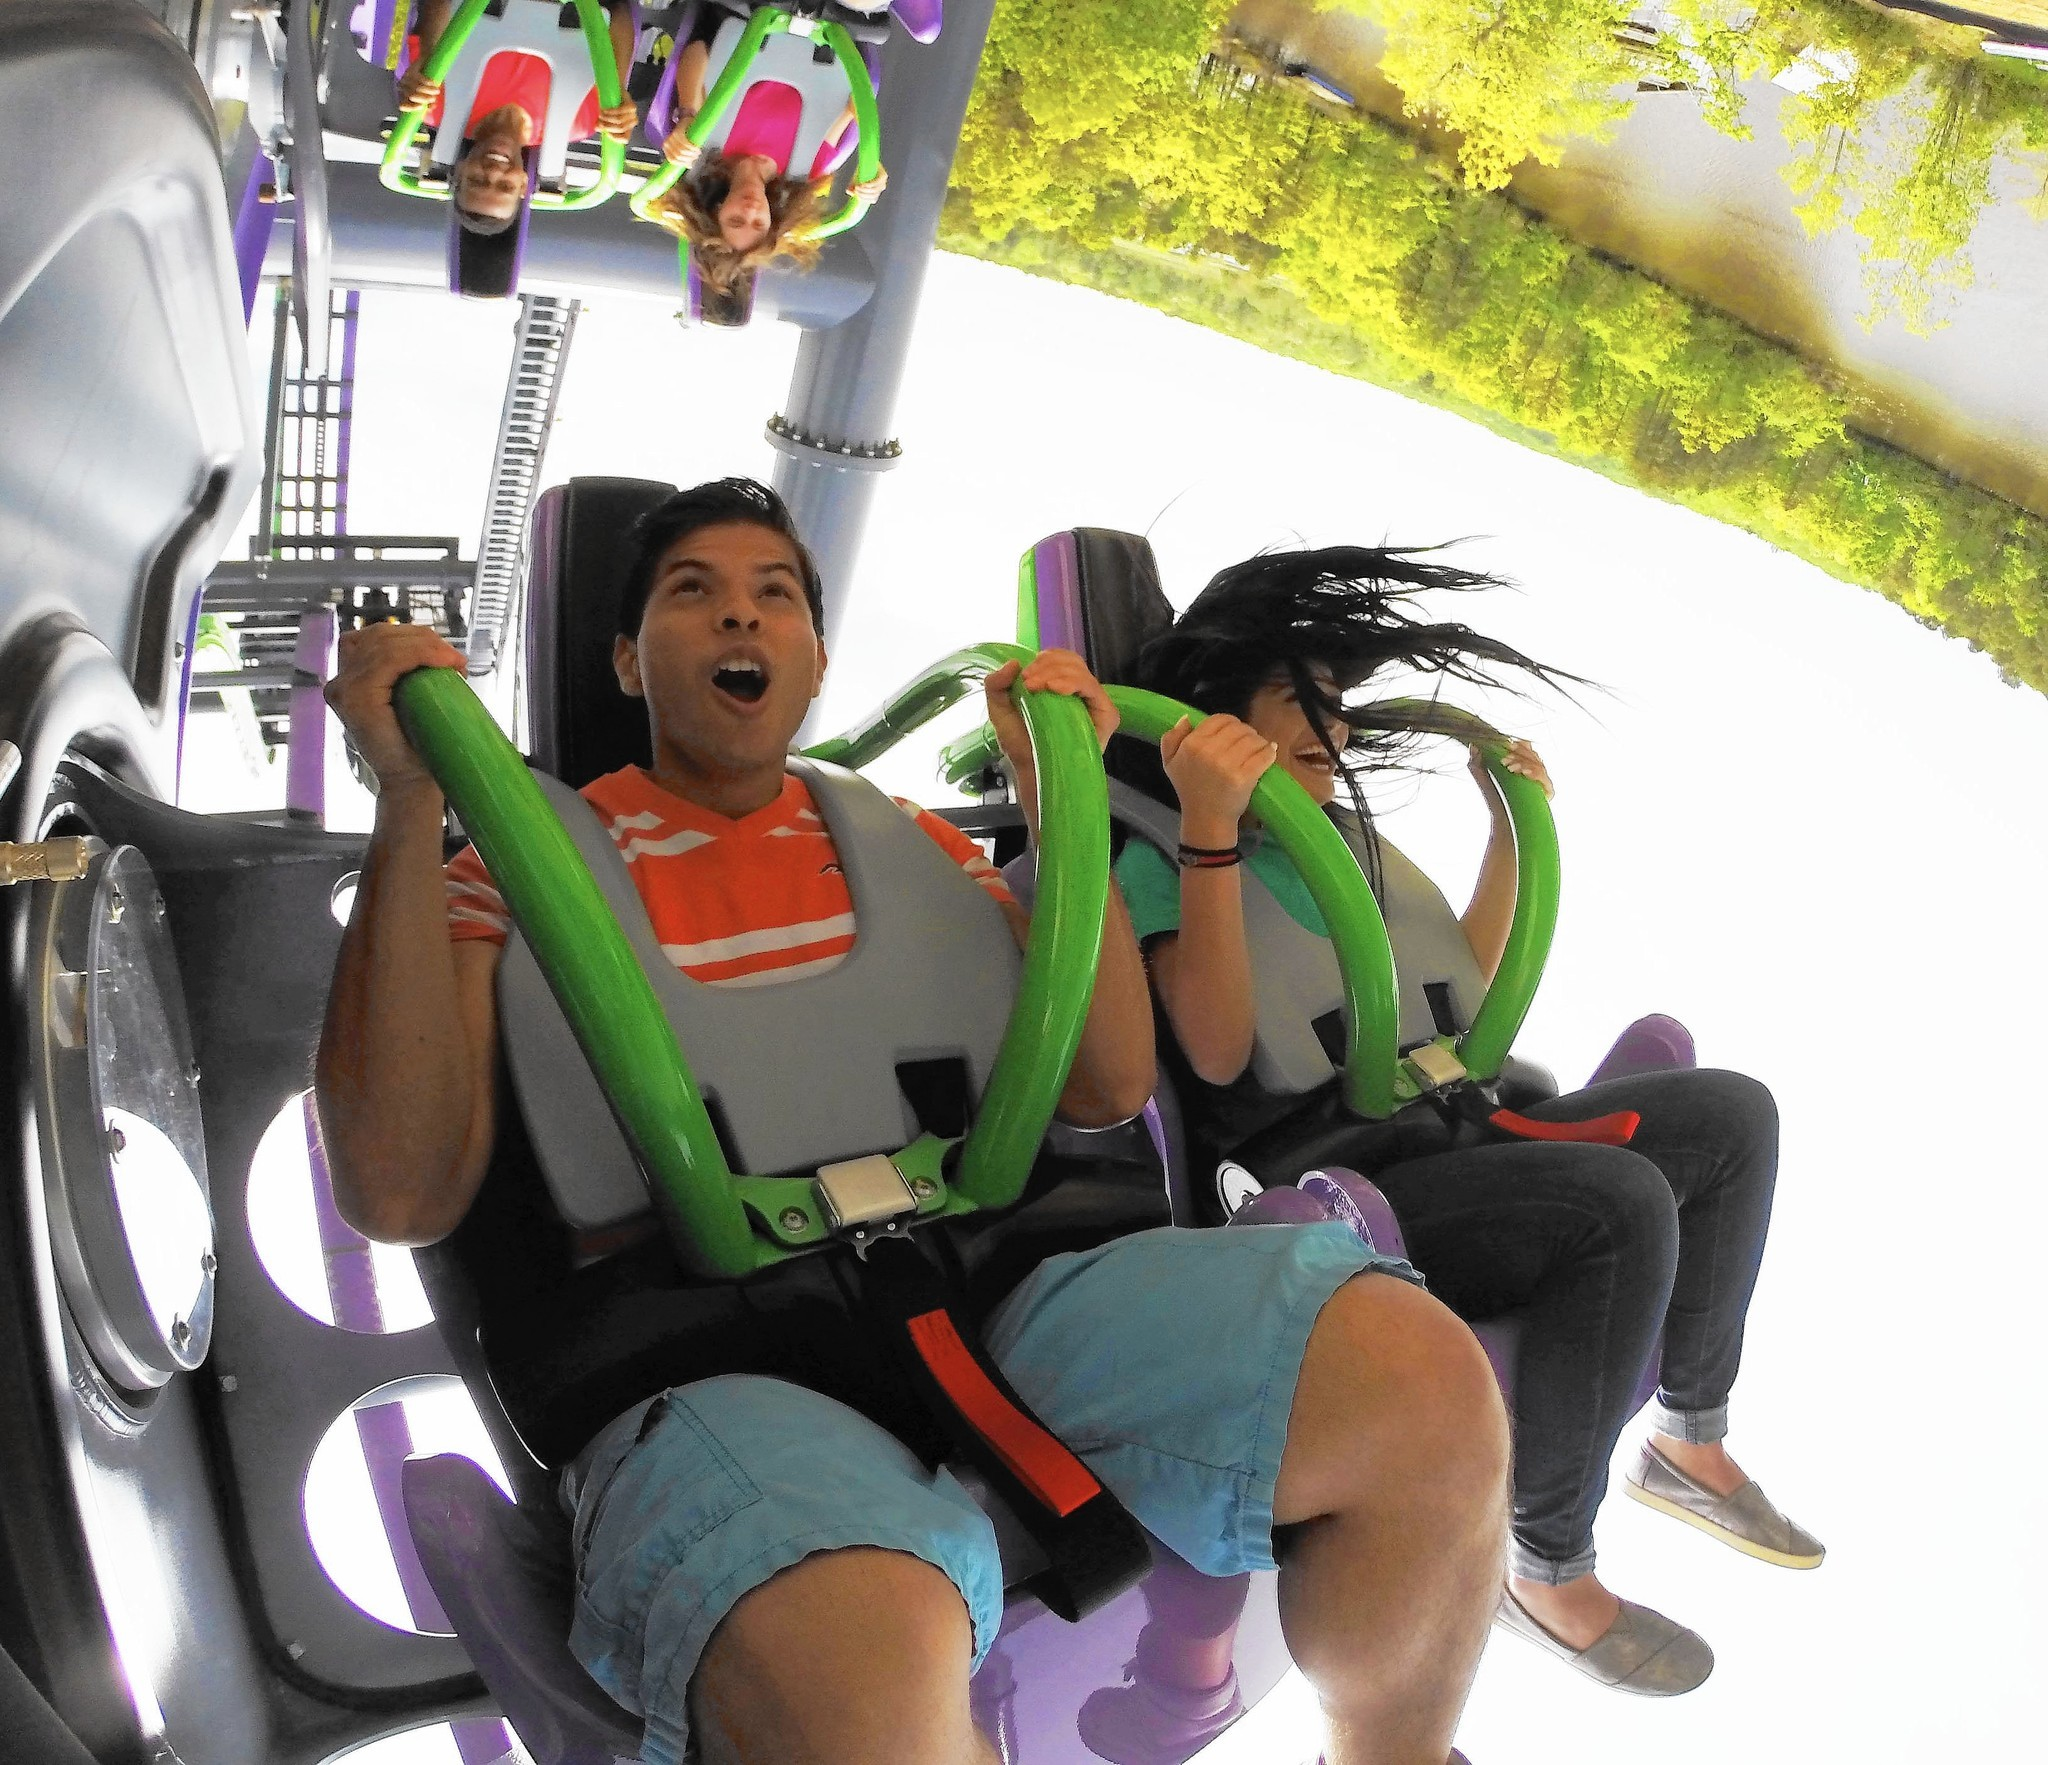 Six Flags Great America announces new 'free-fly' roller coaster: The Joker